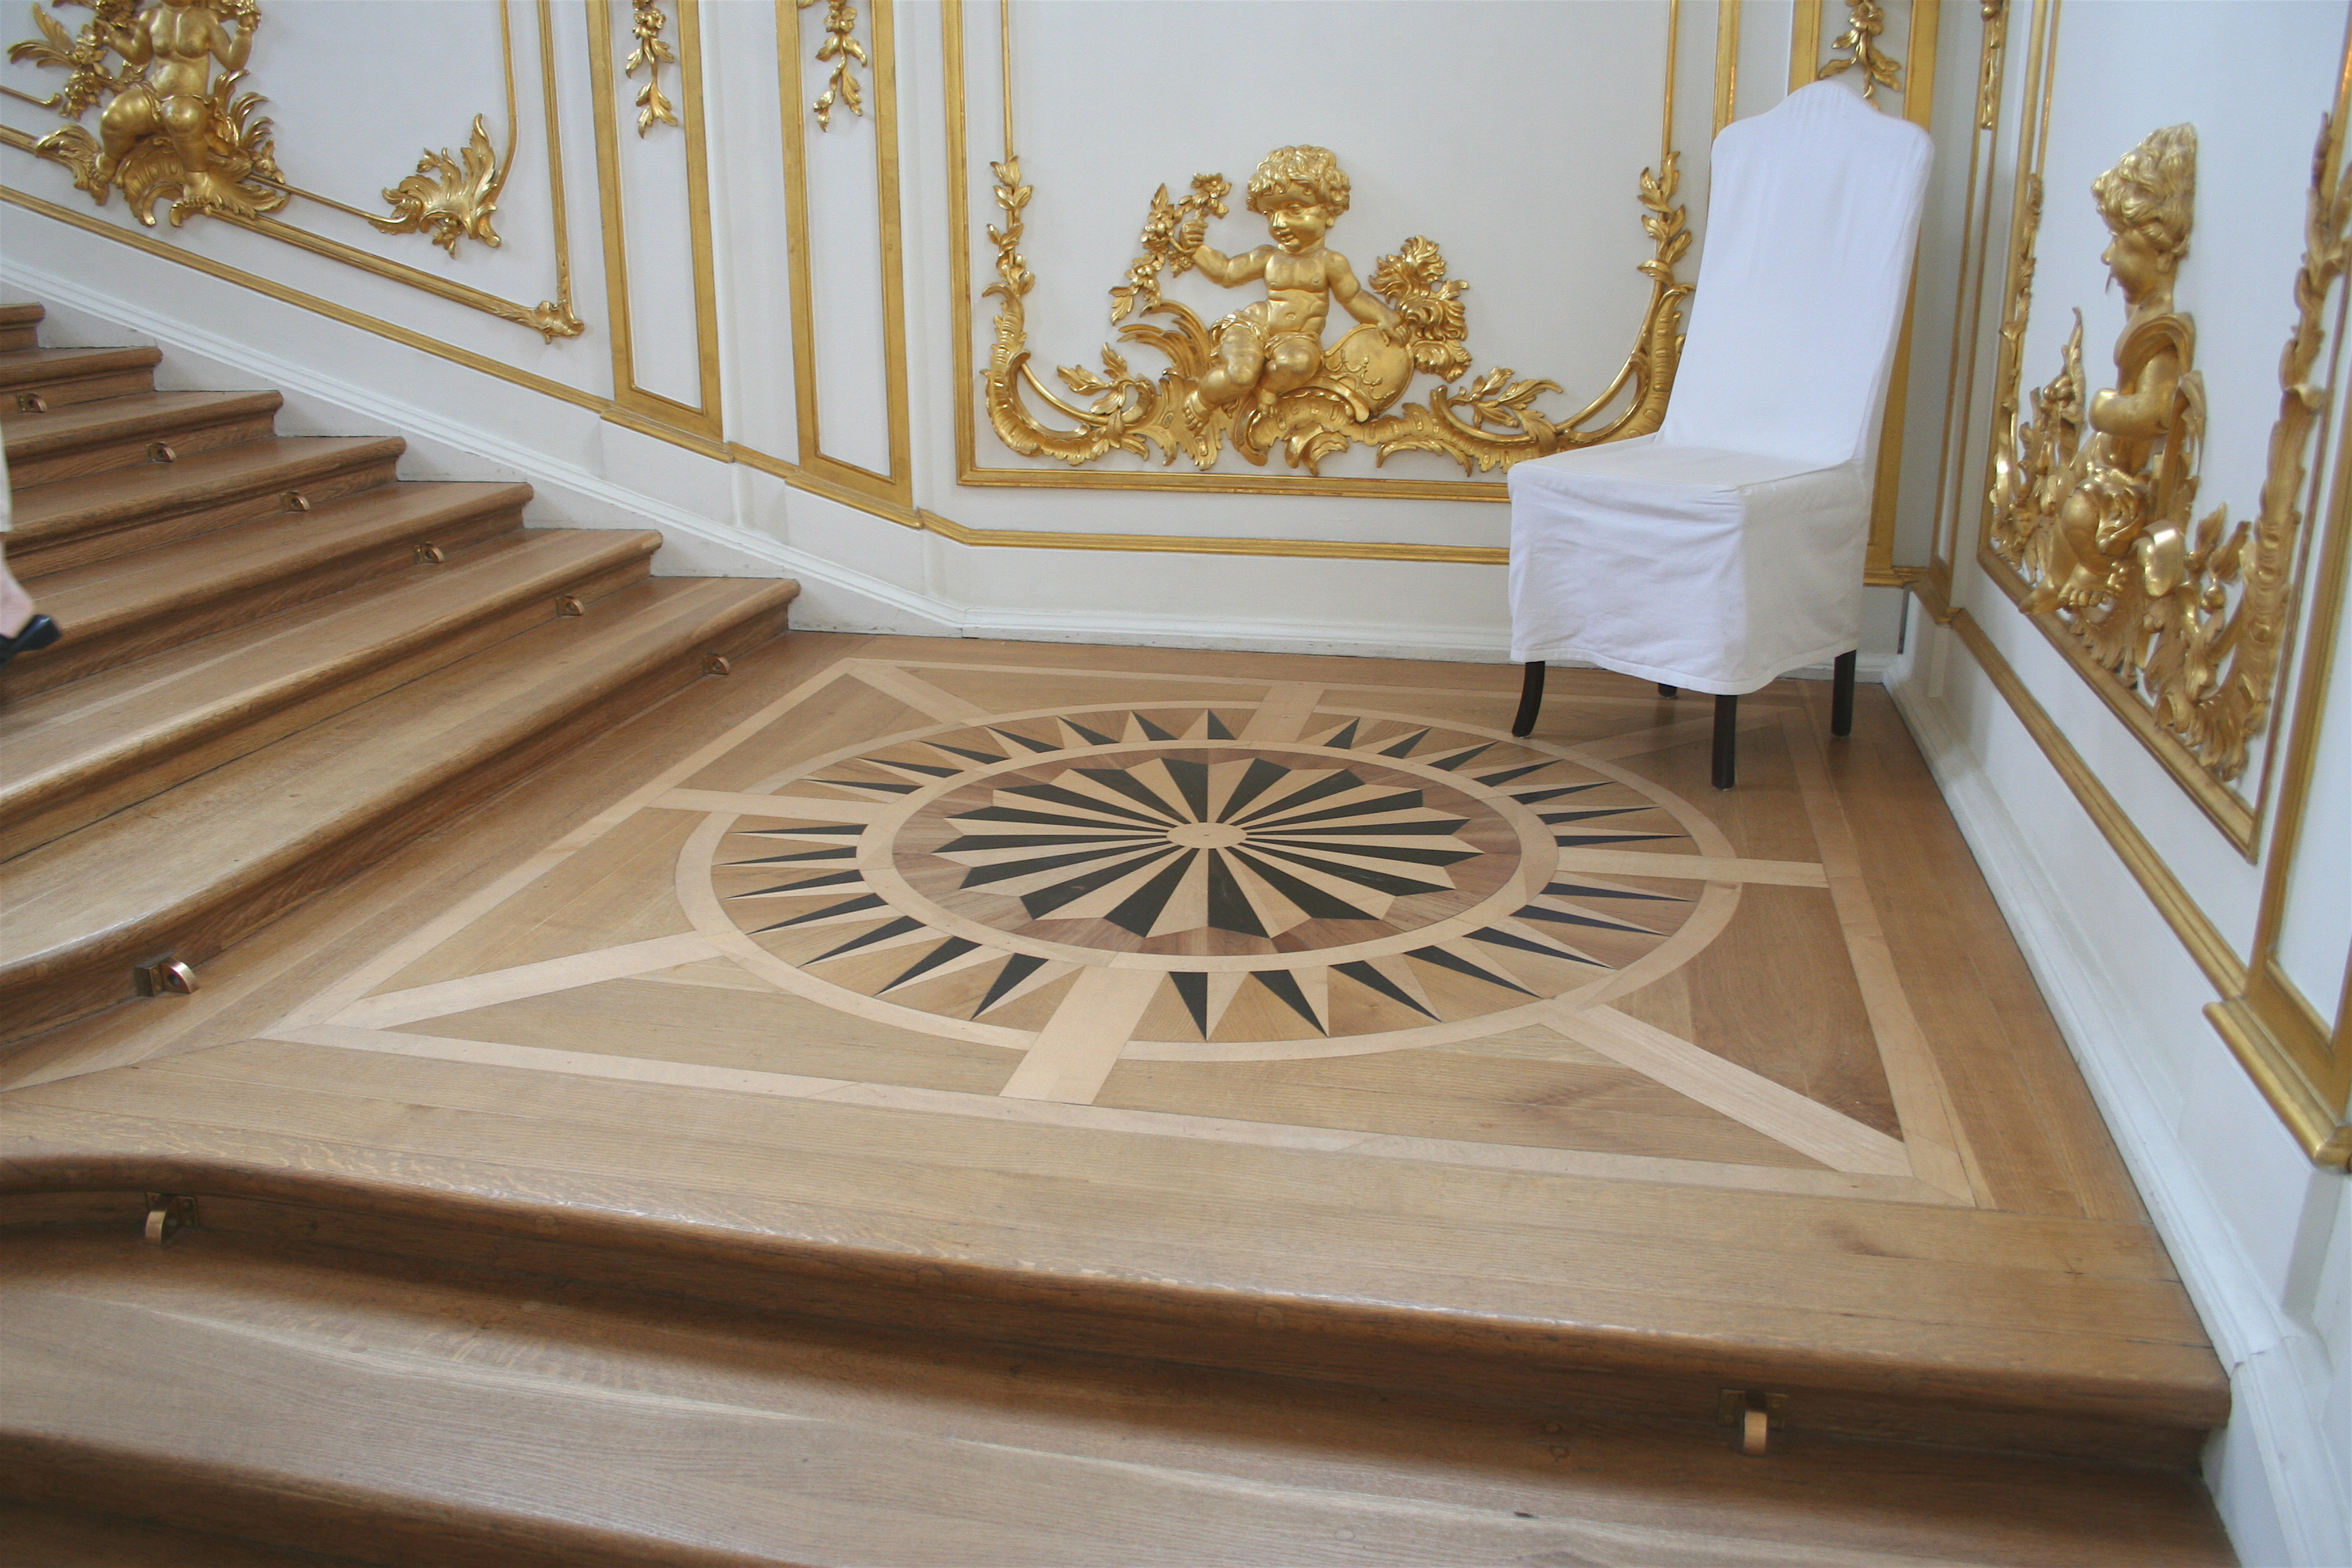 St. Petersburg Palace - Stair with Parquet Motif (Hardwood Floor Medallion)